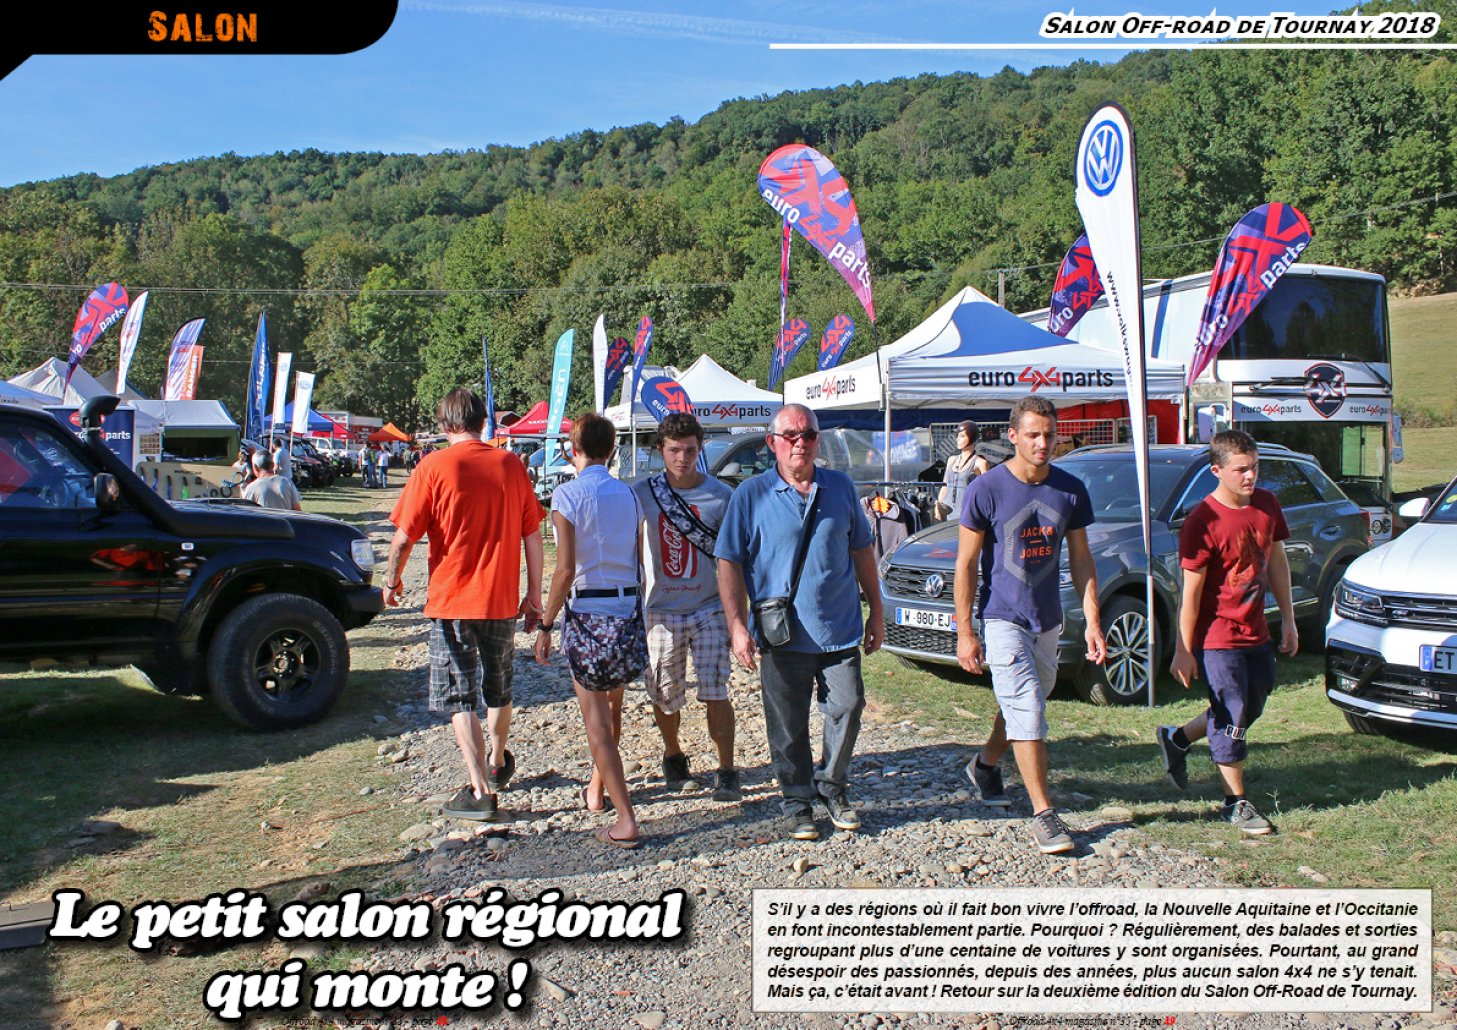 Le Salon Off-road de Tournay 2018